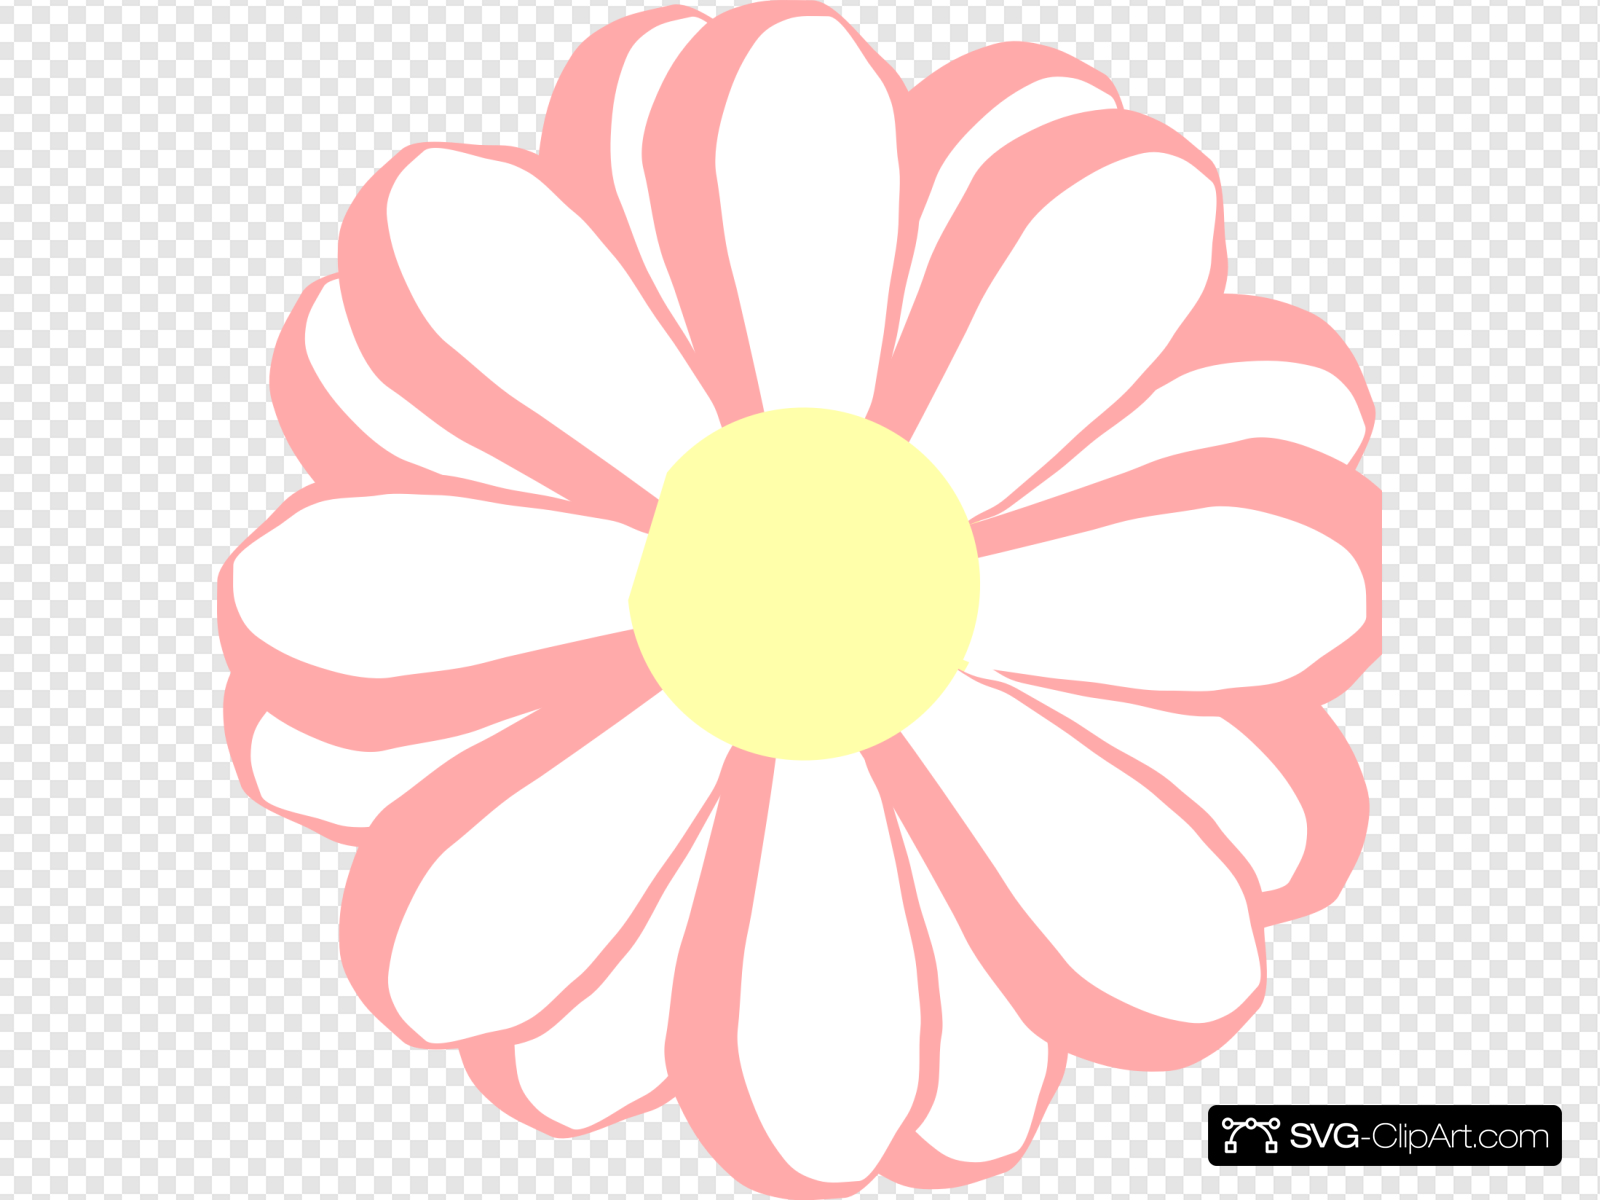 Debutante Ball Flower Clip art, Icon and SVG.